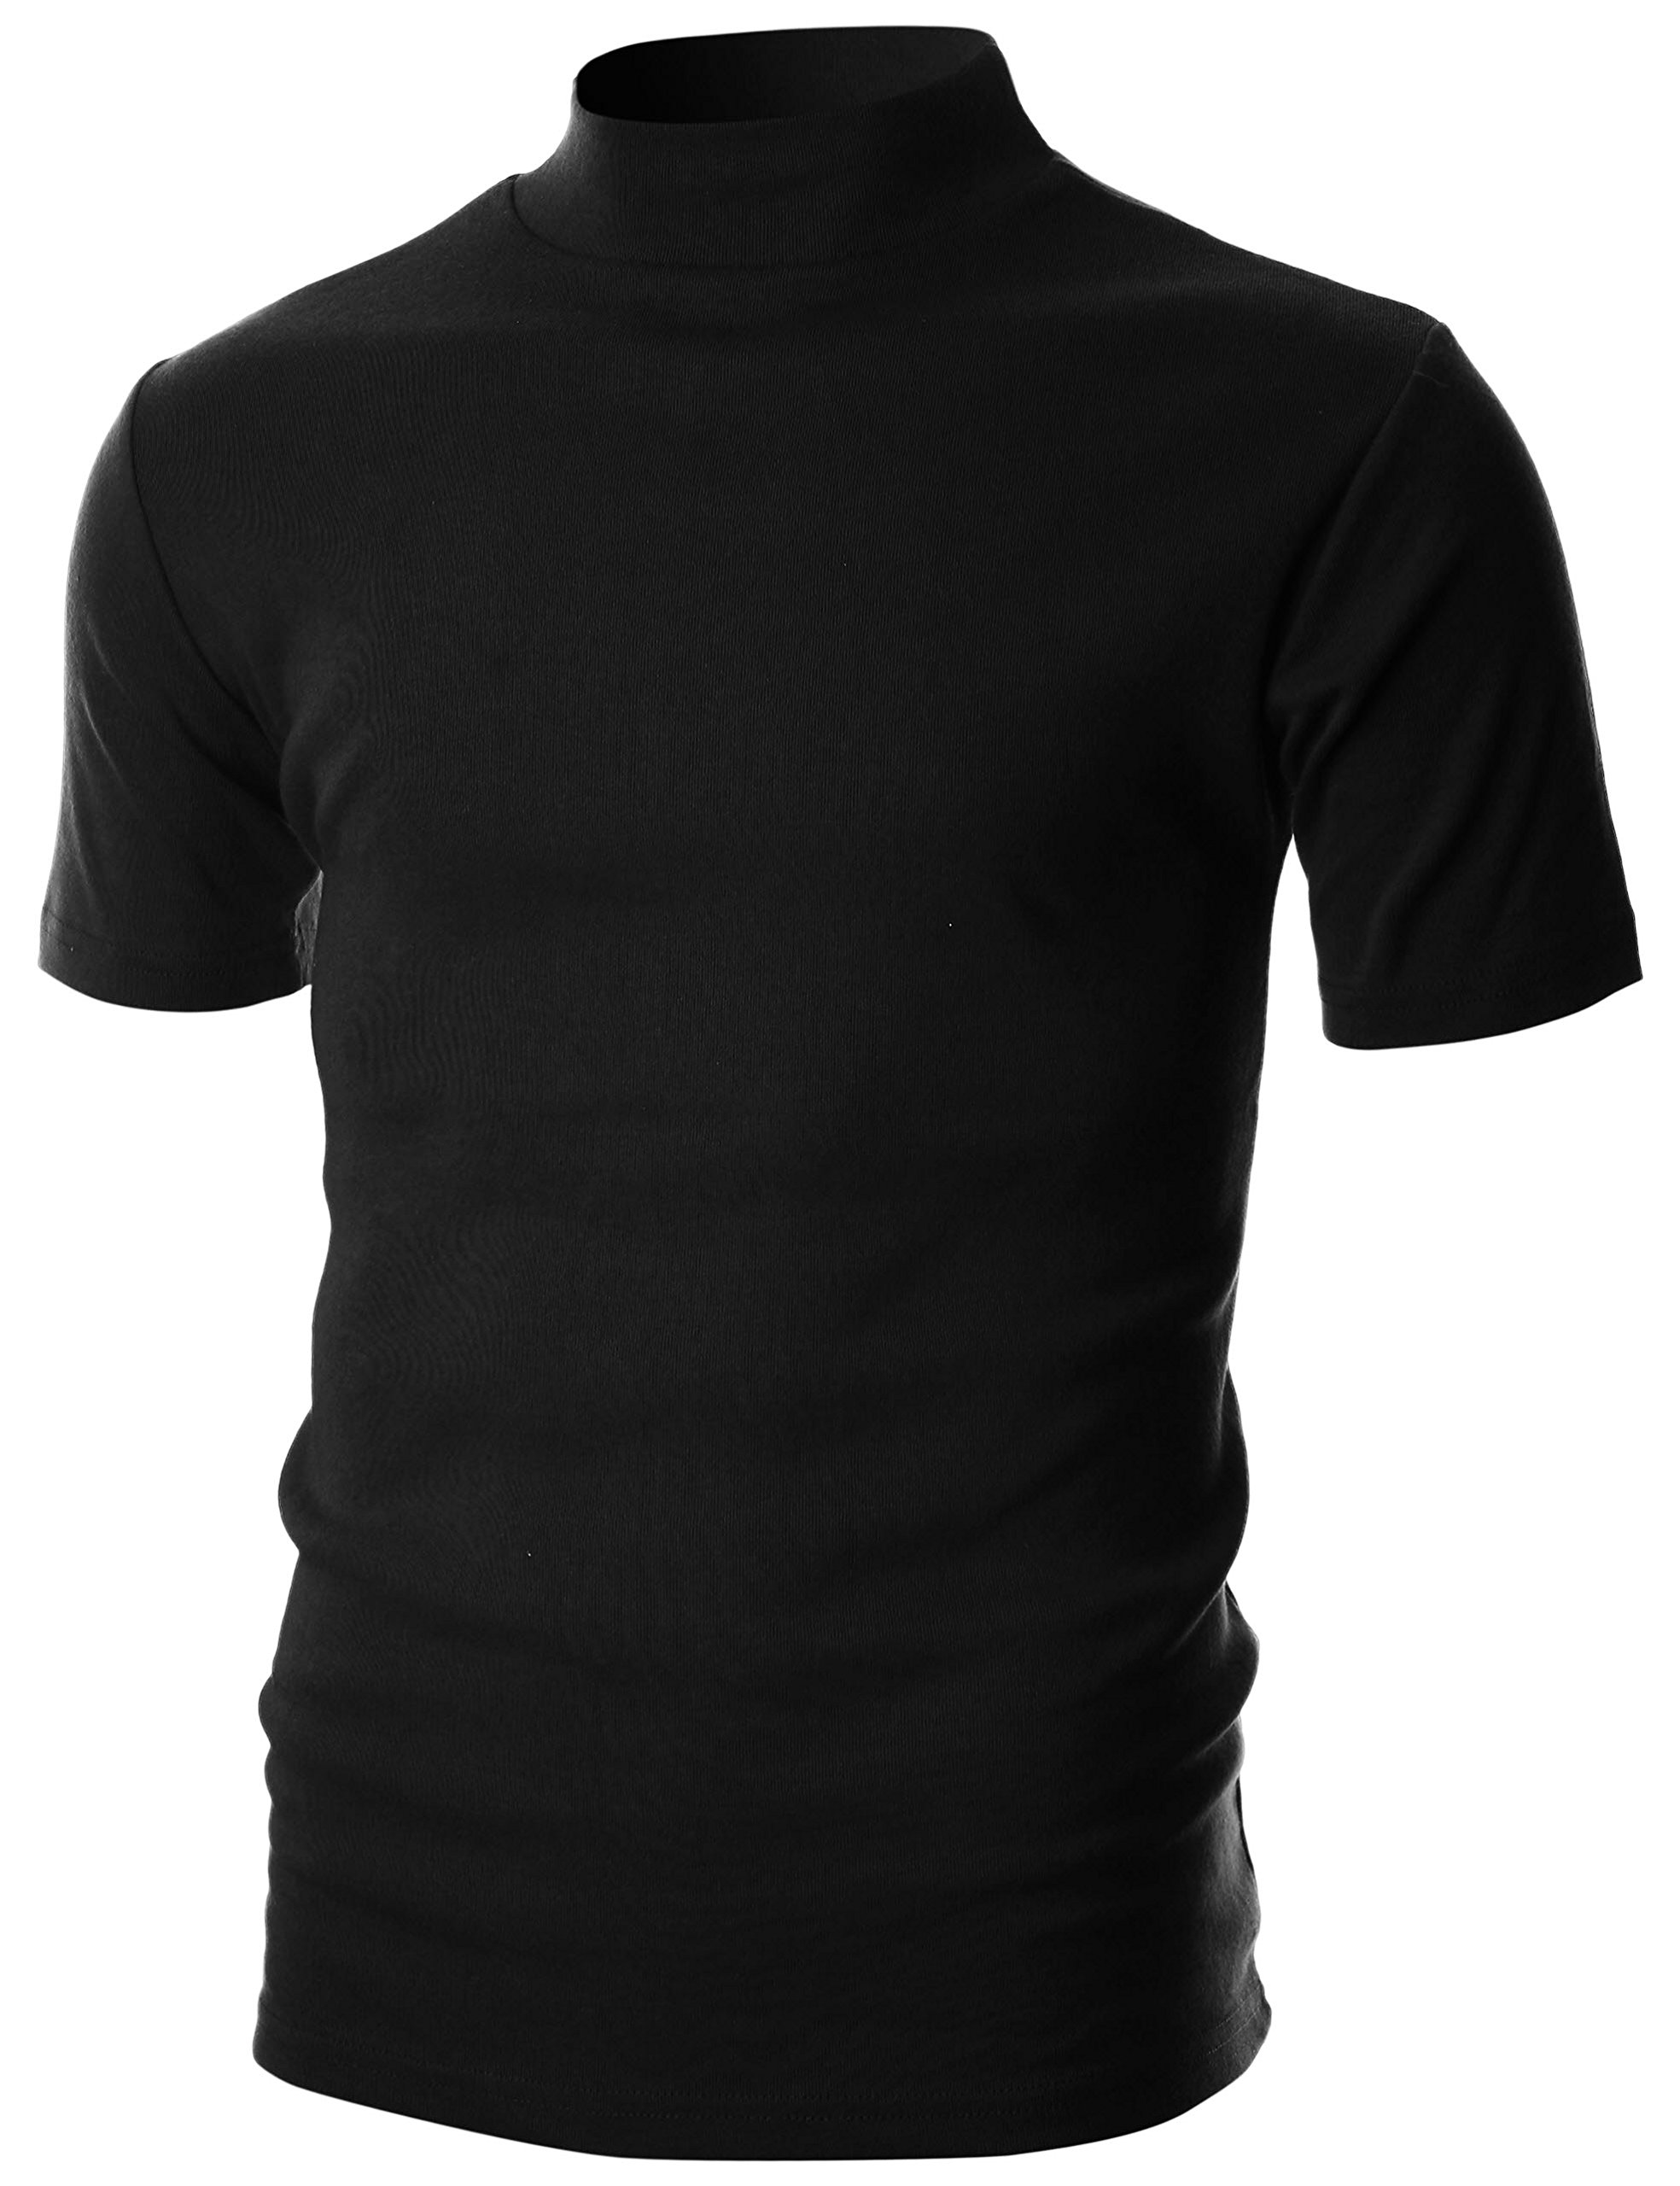 Ohoo Mens Slim Fit Flice Short Sleeve Pullover Lightweight Mockneck/DCT105-BLACK-M